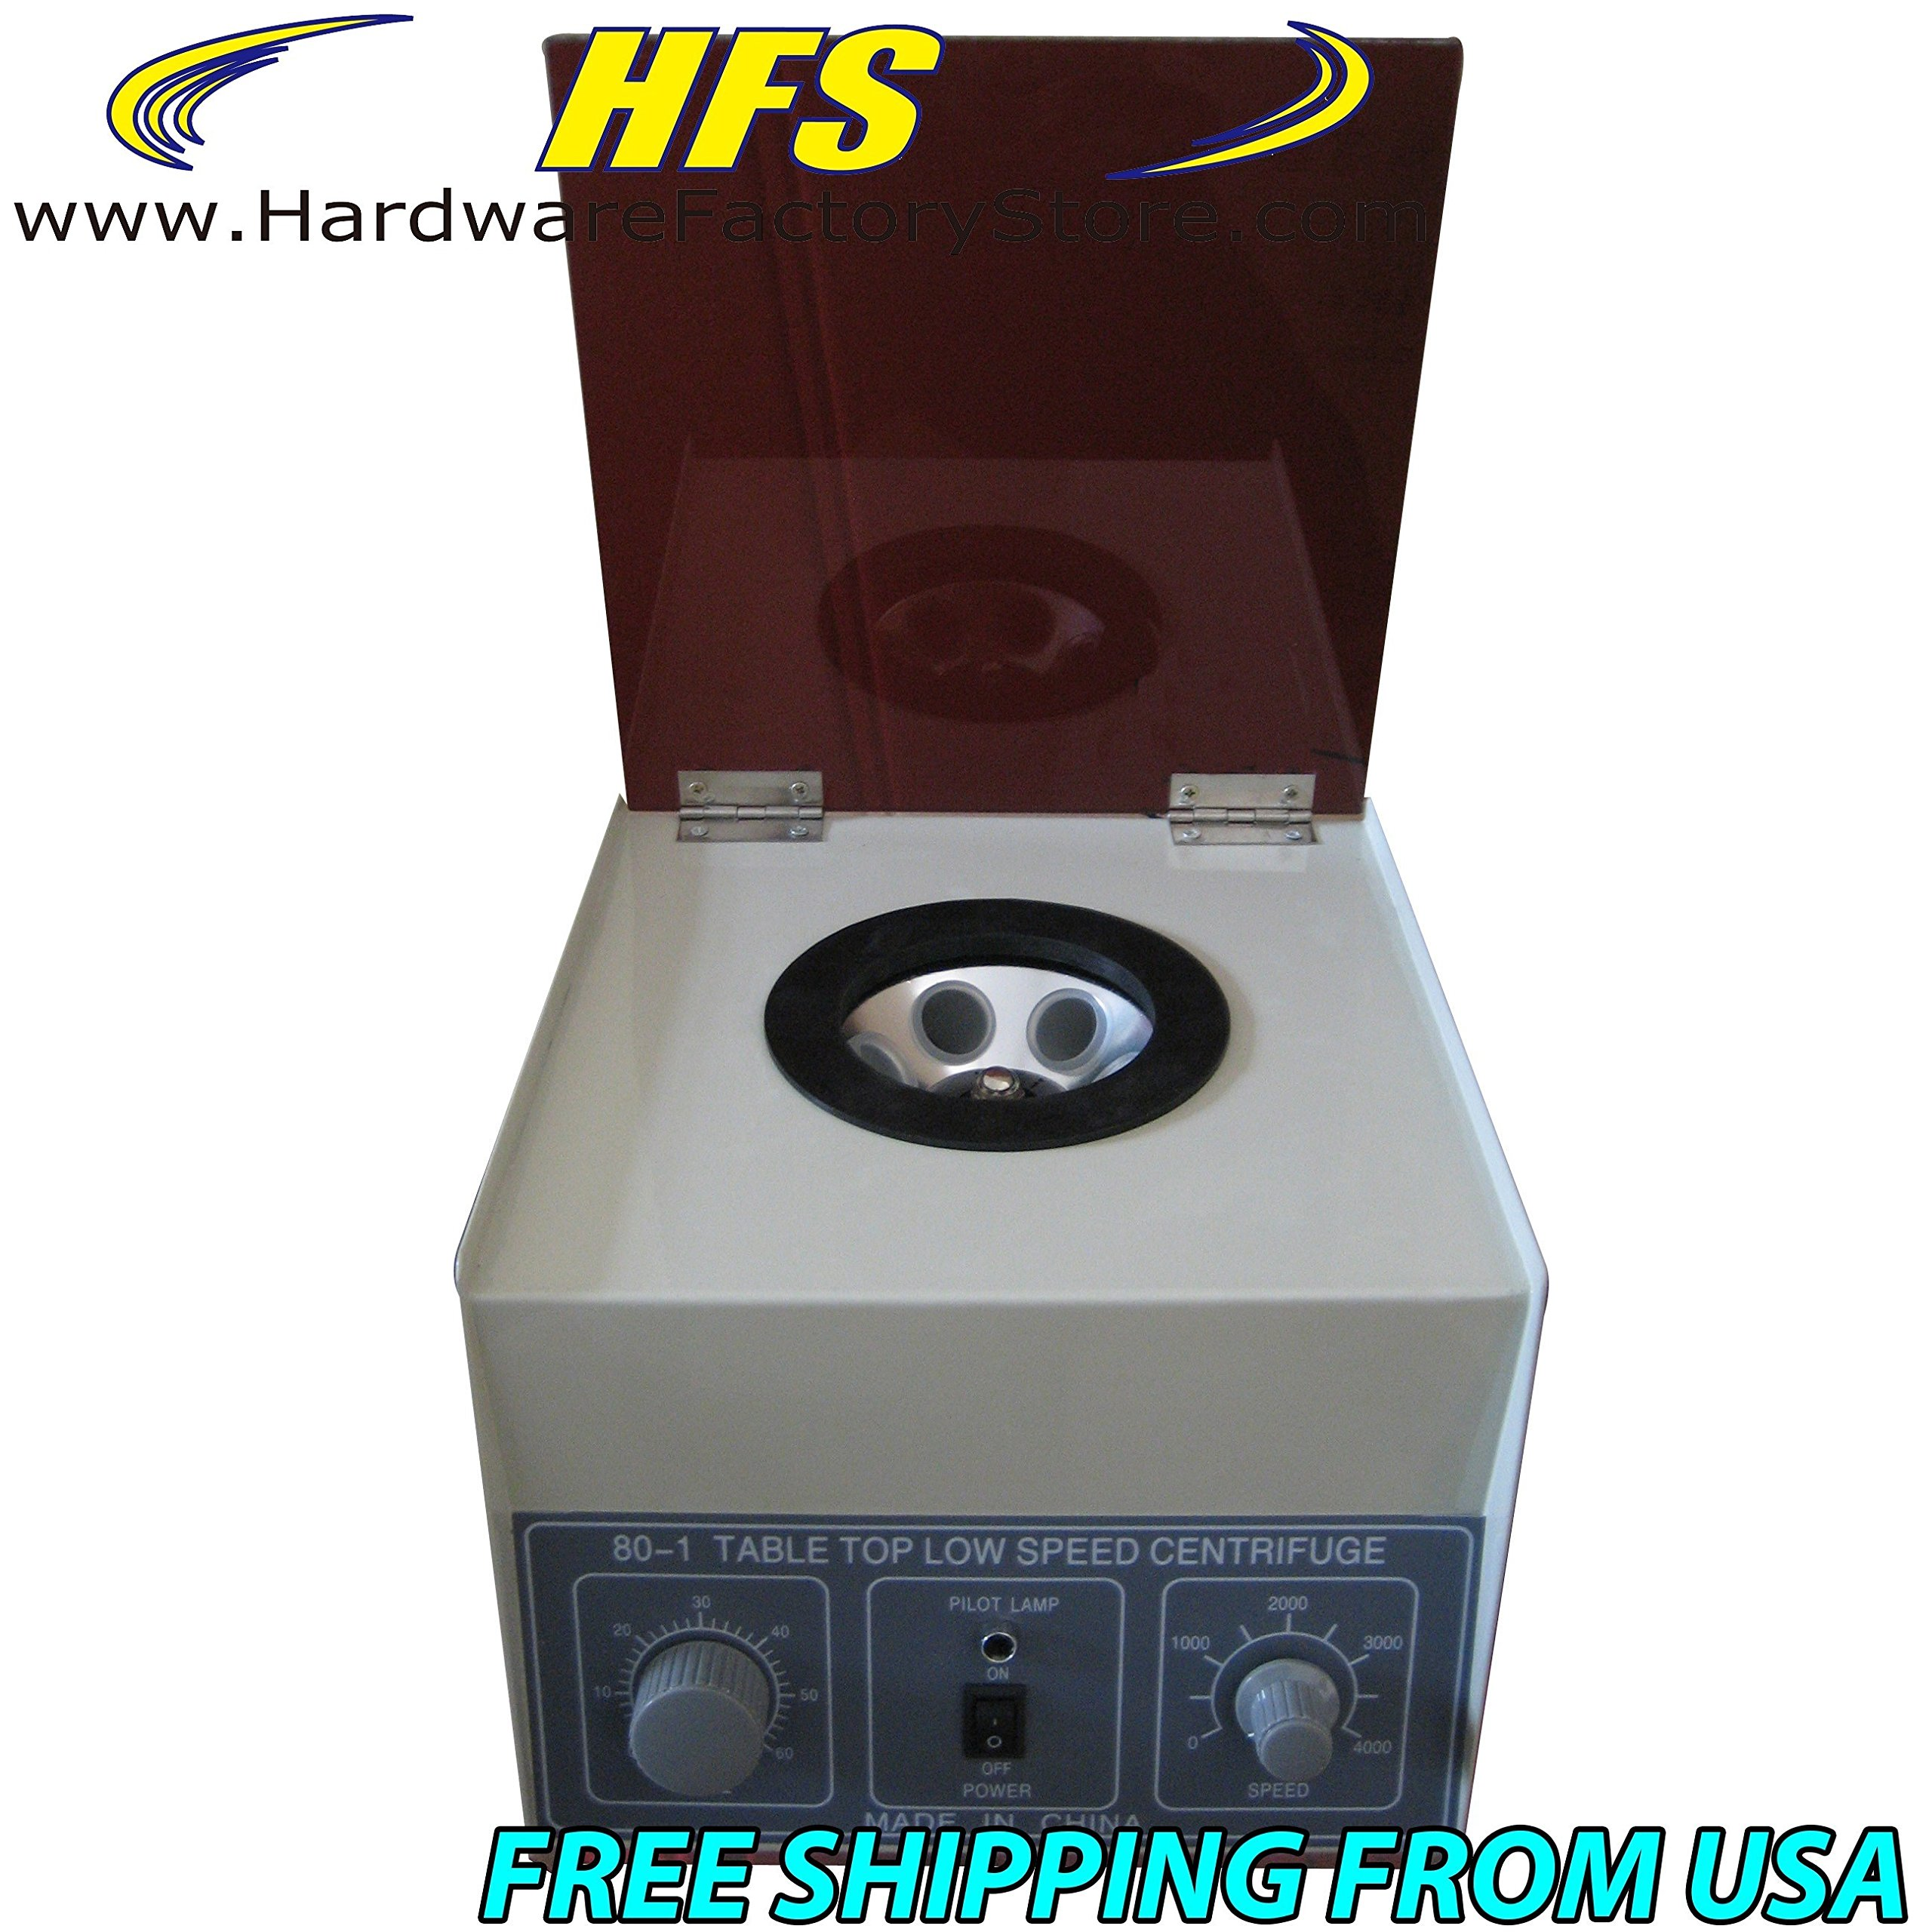 HFS (R) New Desktop Electric Centrifuge Lab (Timer 0-30min) Speed: 0-4000 Rpm, Cap:20ml X 6 Tube (80-1) 110v/60hz by Hardware Factory Store (Image #2)